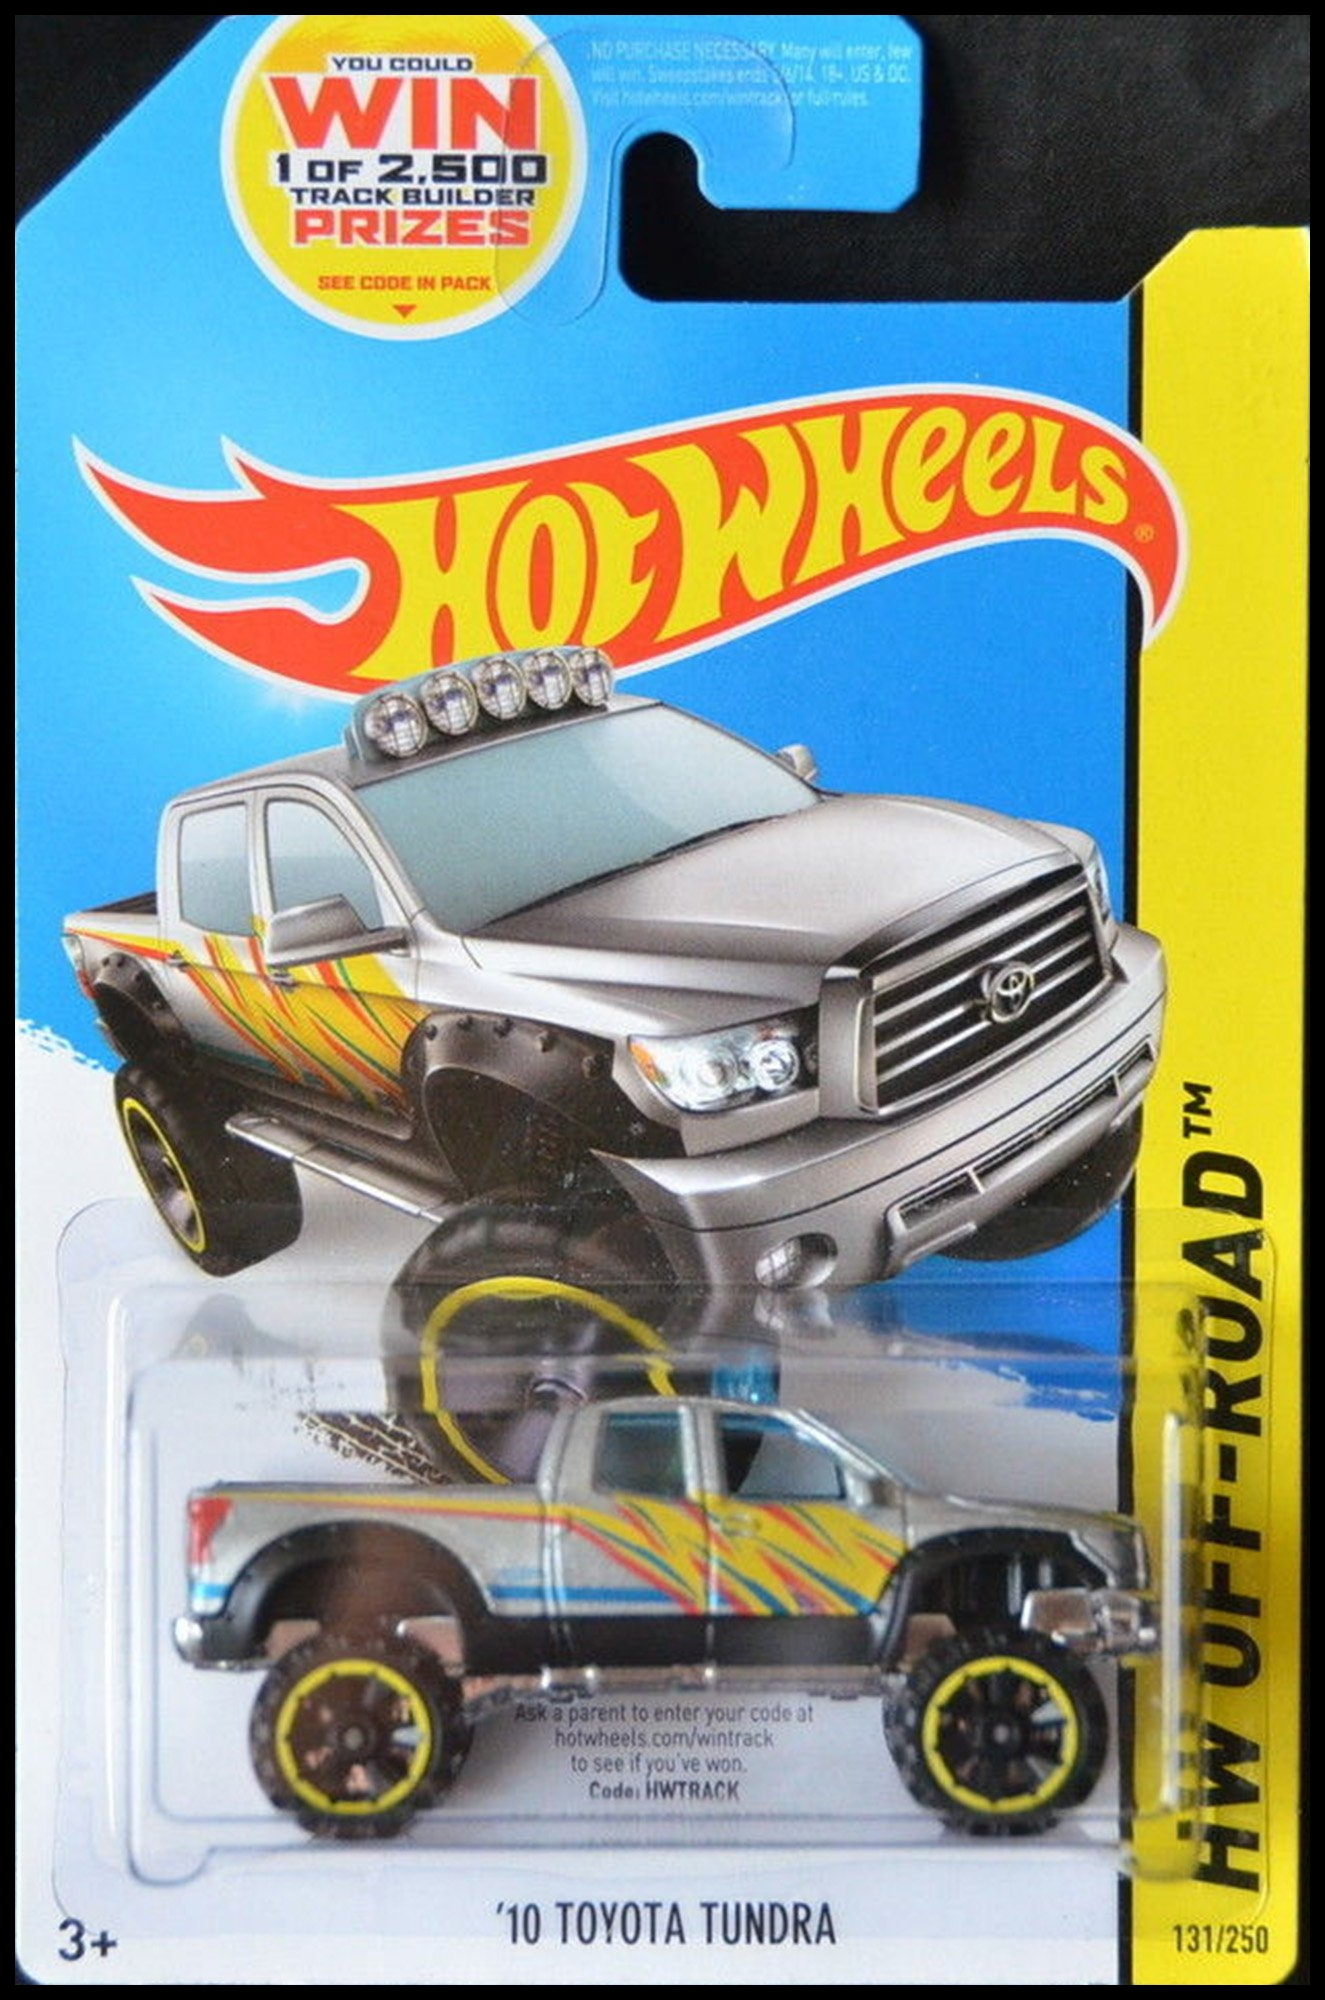 Amazon HOT WHEELS 2014 RELEASE SILVER 2010 TOYOTA TUNDRA DIE CAST PICK UP TRUCK HOT WHEELS 2010 TOYOTA TUNDRA Toys & Games